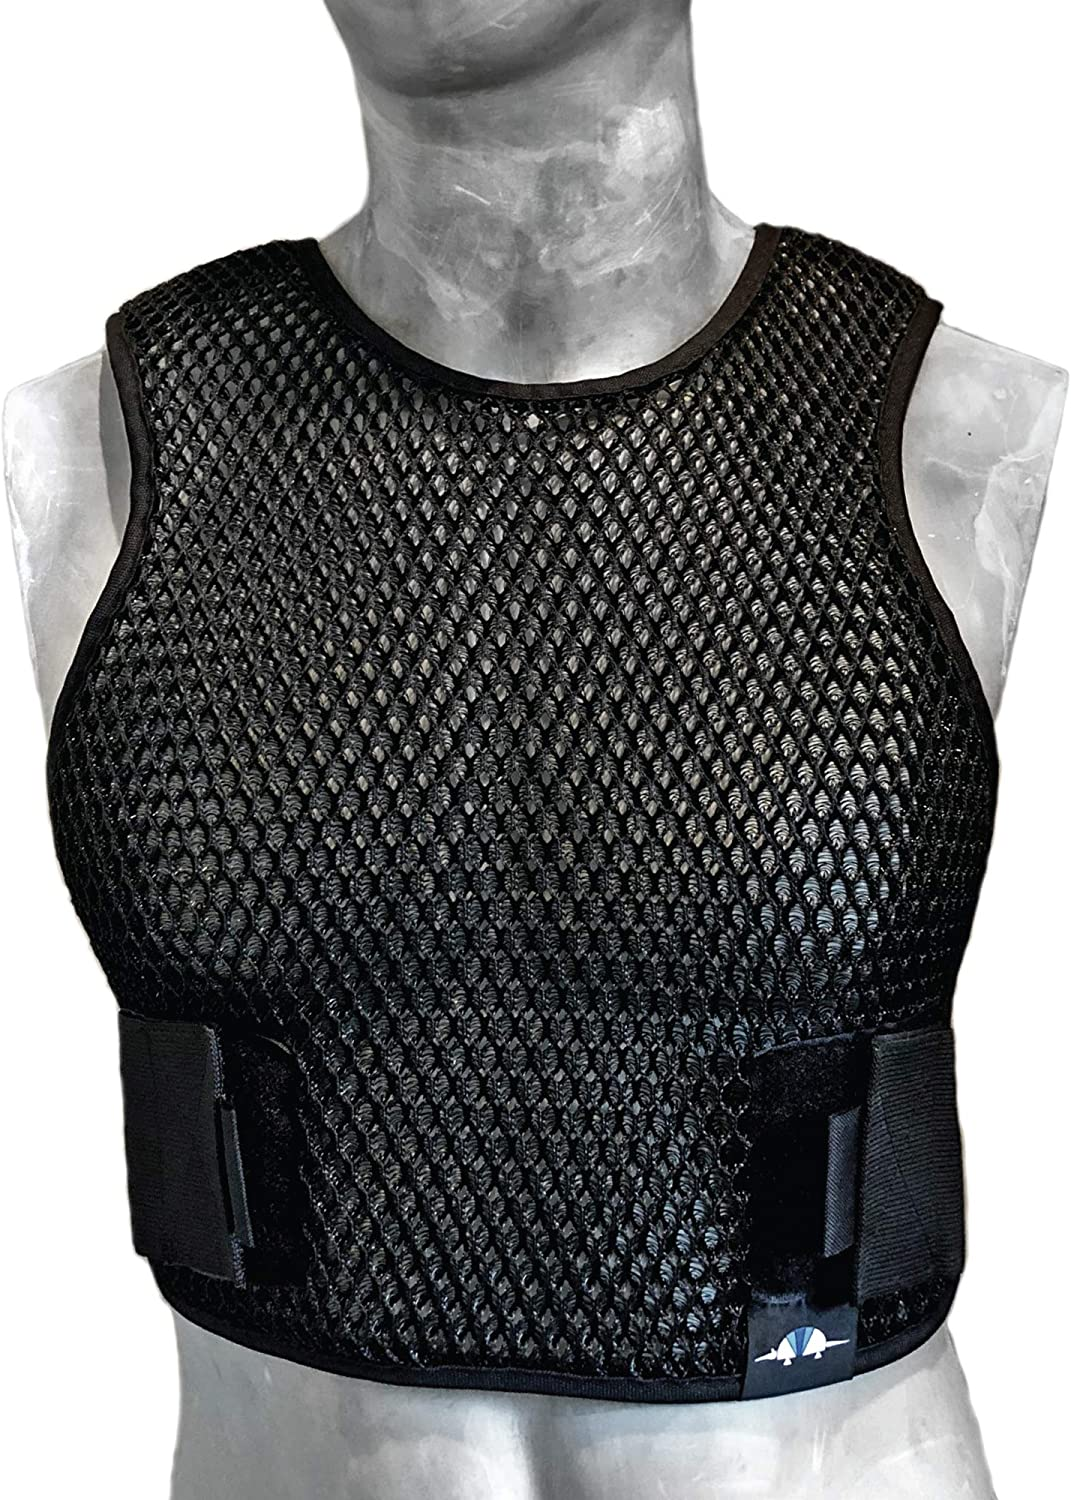 Armadillo Dry Cooling Vest - Body Armor Ventilation for Police, Military, Airsoft, Motorcycle, Paintball & Outdoor Games. Increase Air Flow Under Tactical Gear and Chest Rig/Ballistic Carrier